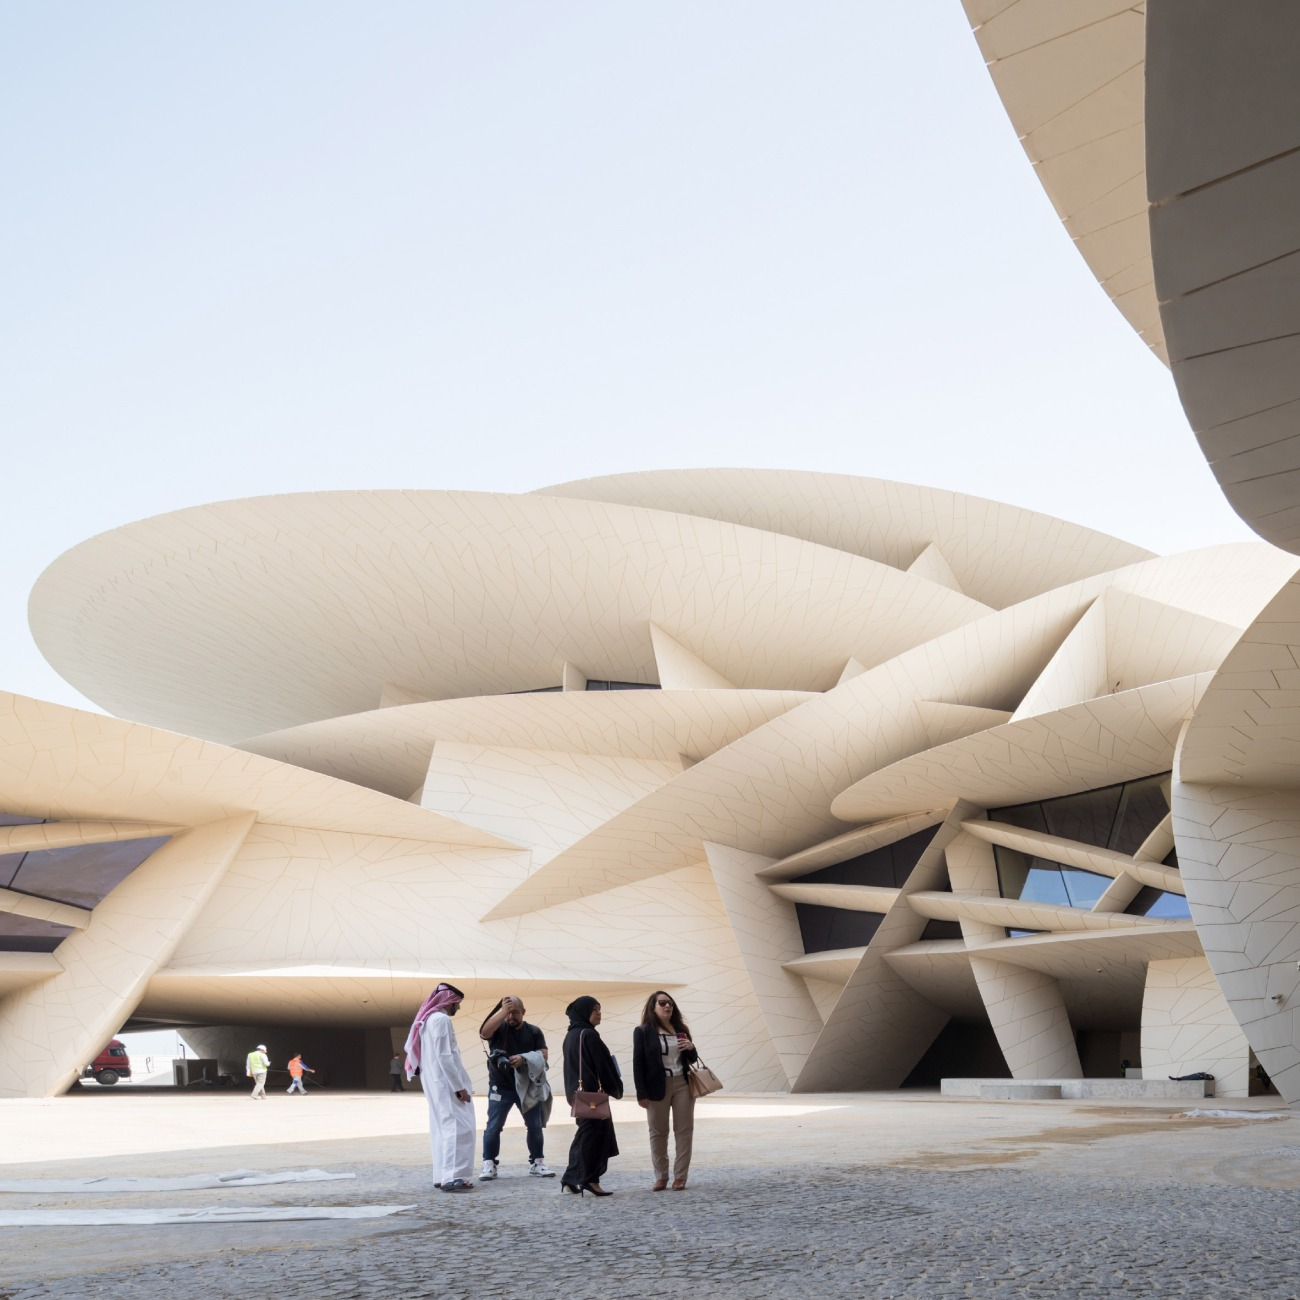 National Museum of Qatar, Doha, Qatar, by Atelier Jean Nouvel